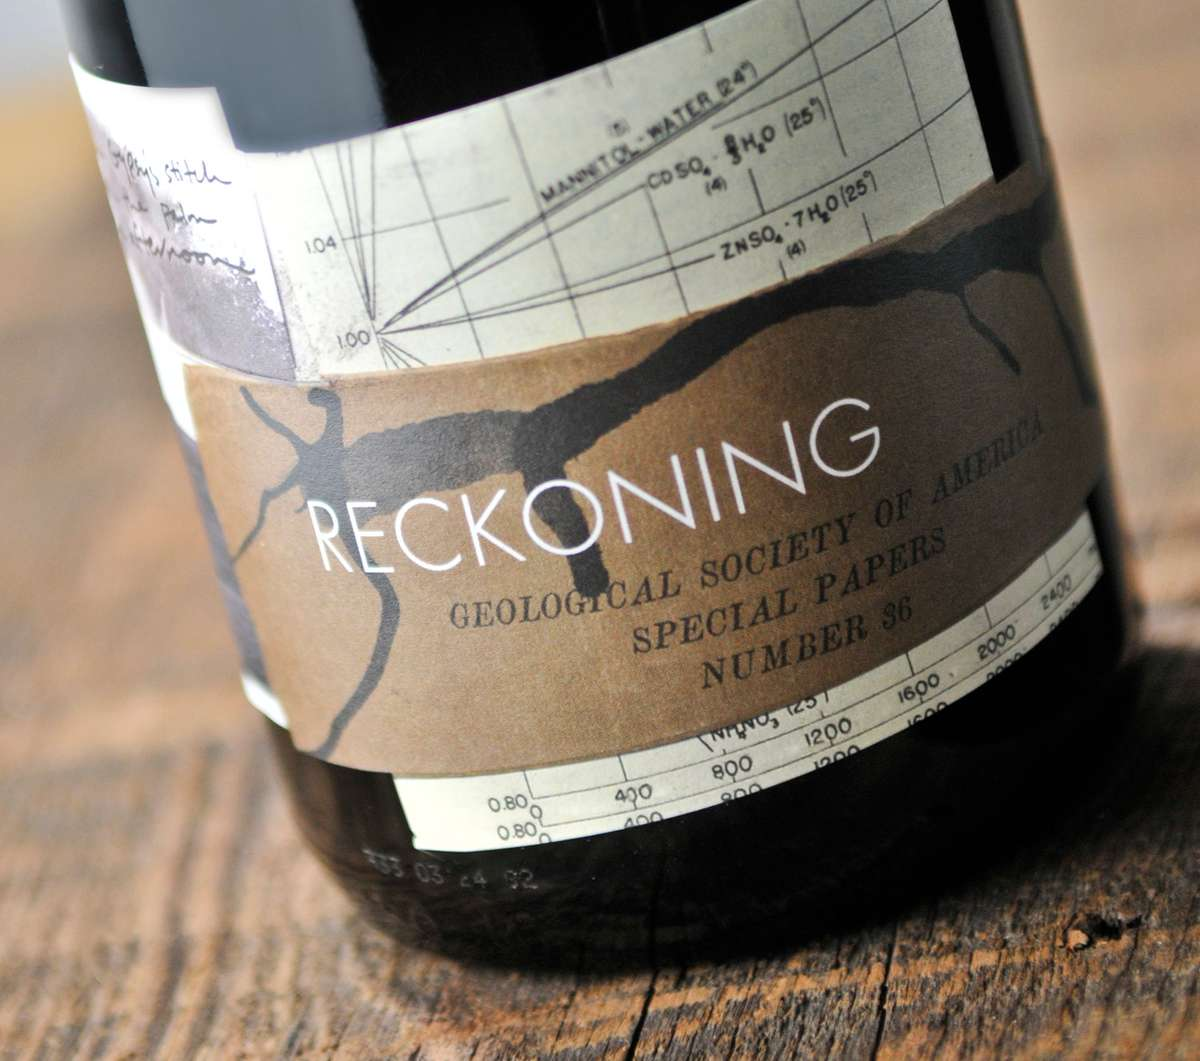 Onx Reckoning Red Blend